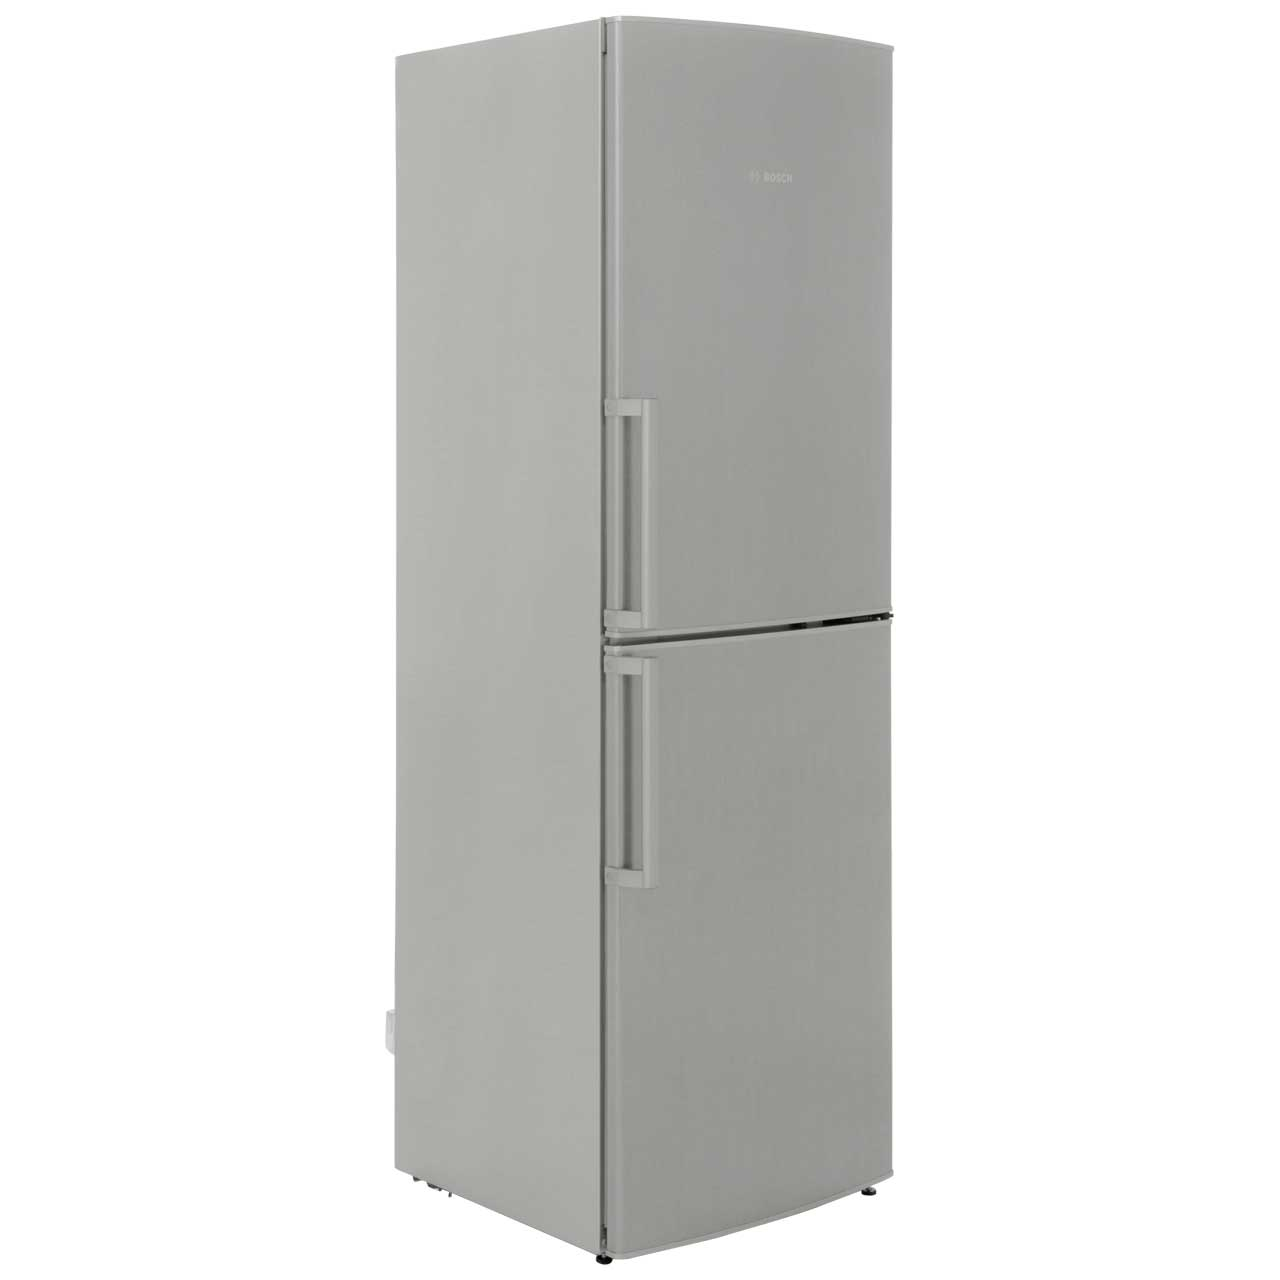 Bosch Serie 6 KGN34VL20G Free Standing Fridge Freezer Frost Free in Stainless Steel Look